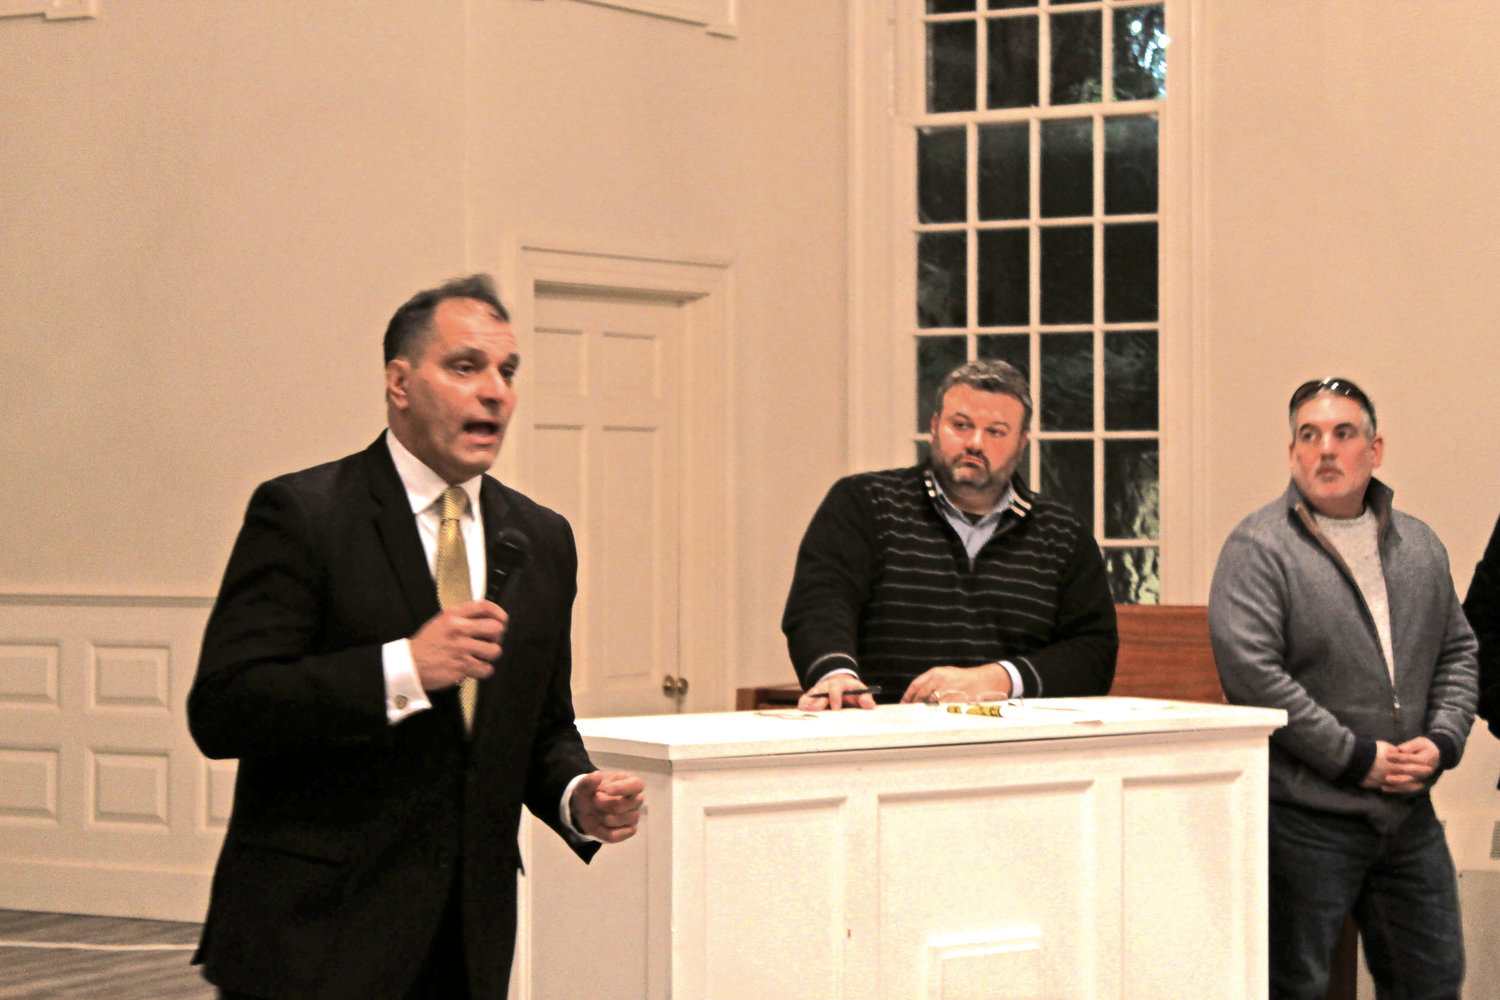 Oyster Bay Town Supervisor Joseph Saladino, left, shared the state of the town with residents at a civics meeting on Jan. 31.